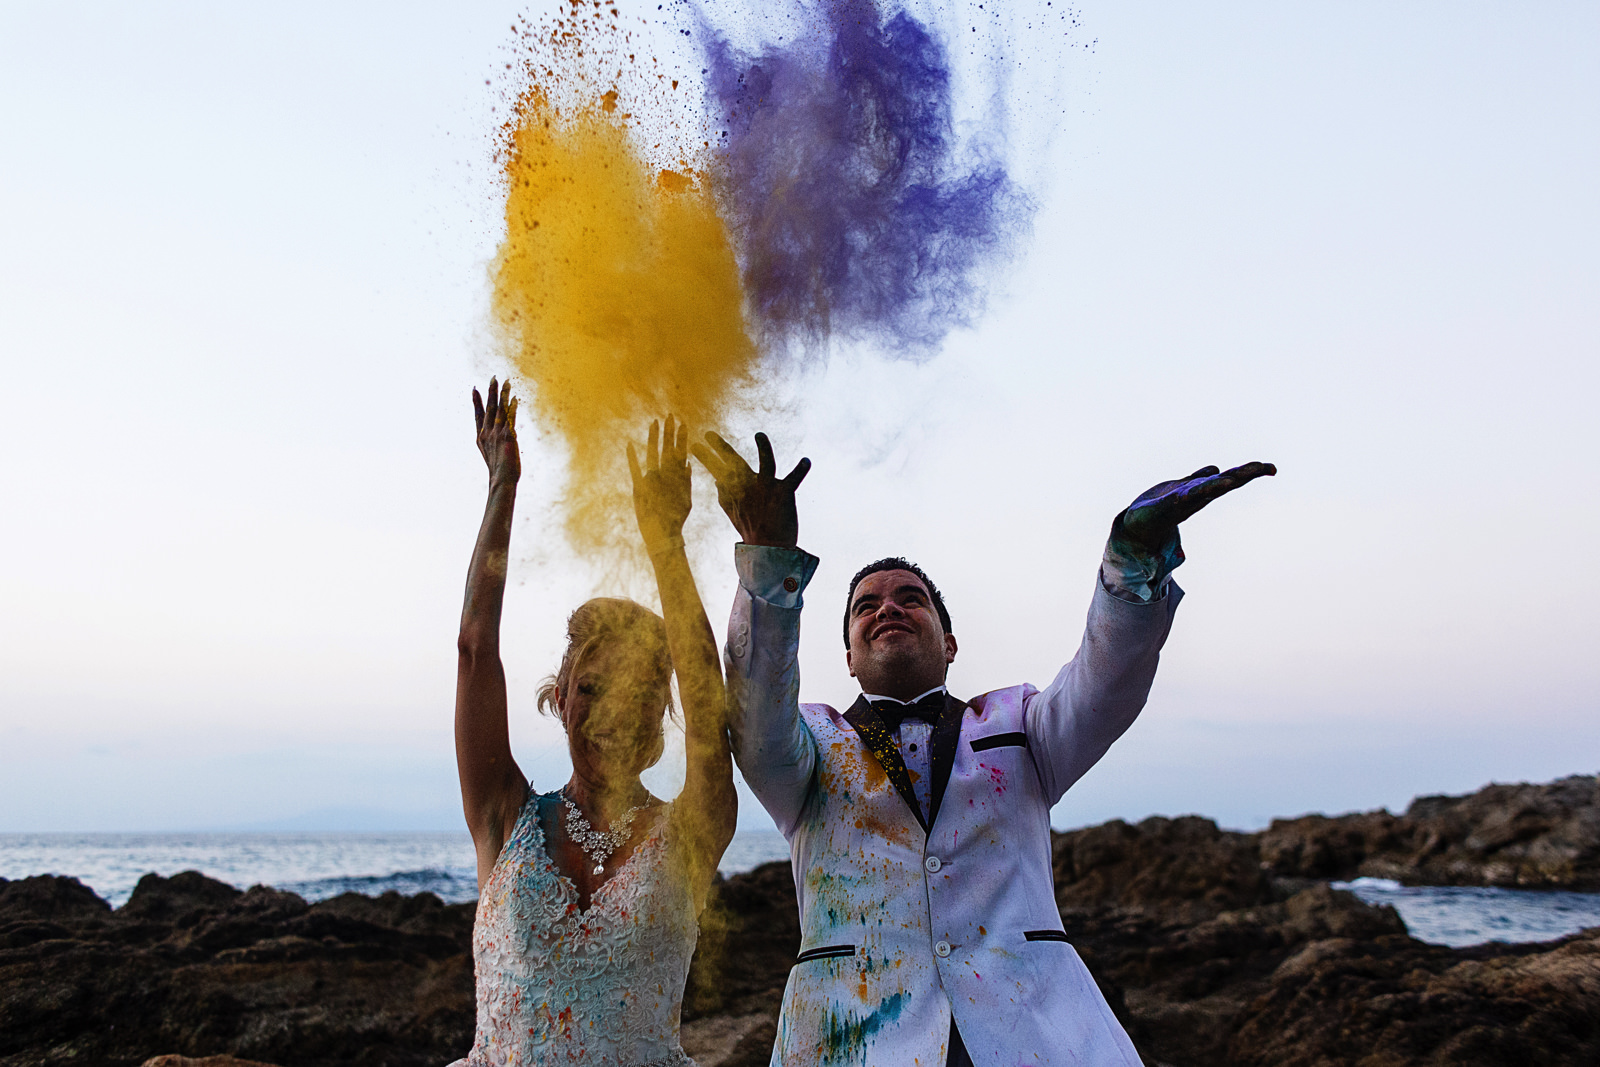 Groom and bride throw colorful holy powder above them